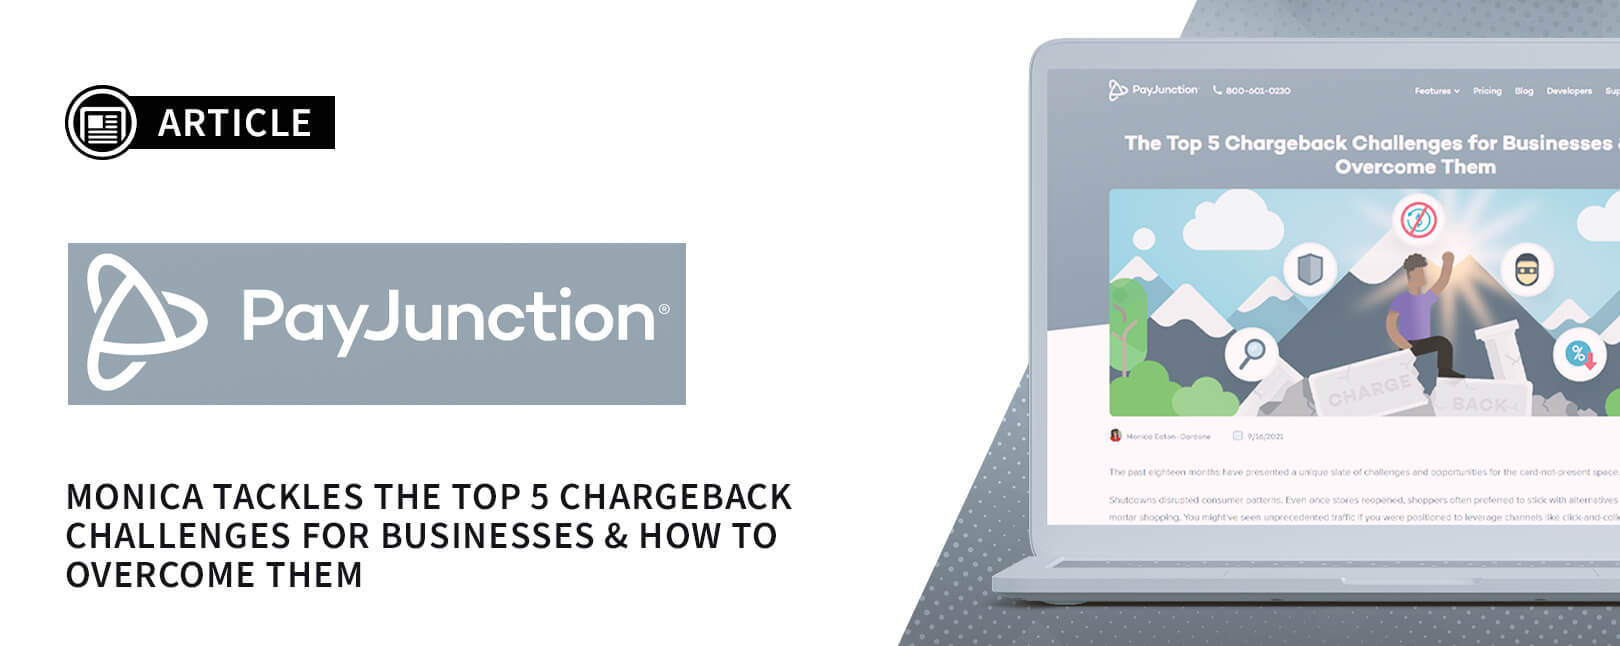 5 Chargeback Challenges for Businesses & How to Overcome Them